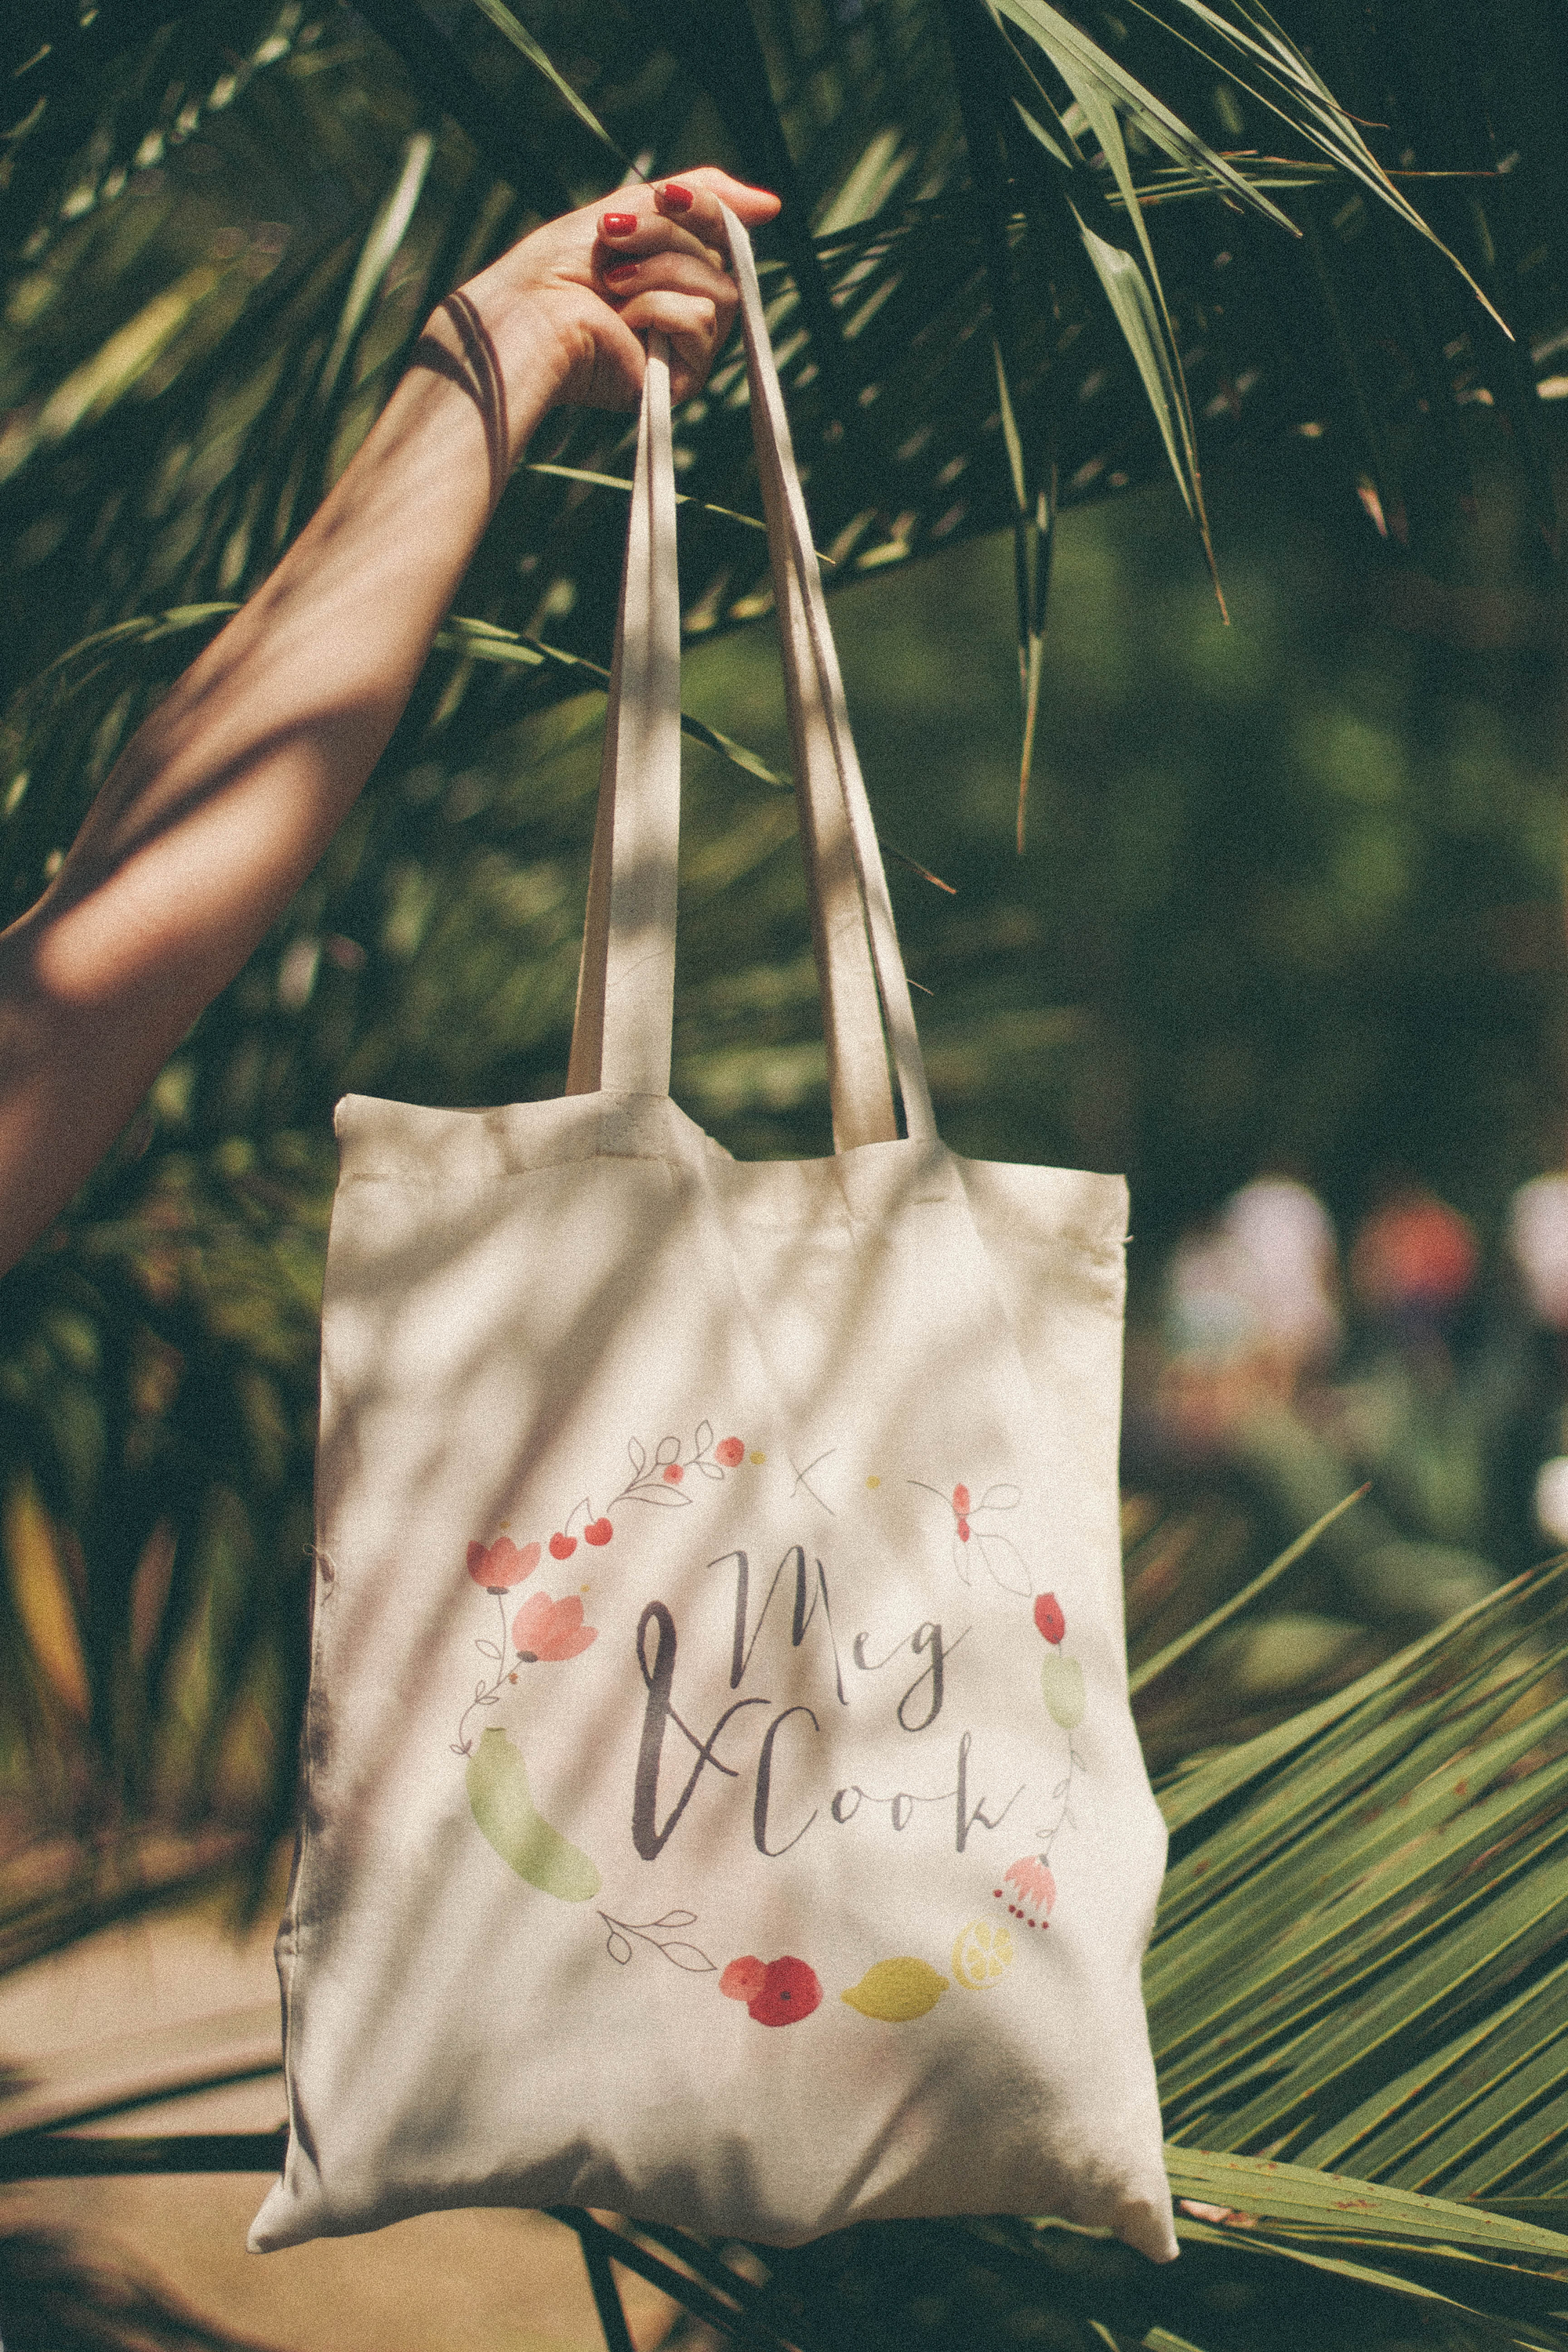 totebag_megandcook_collaboration_lifestyle_photography_lababineau_-12